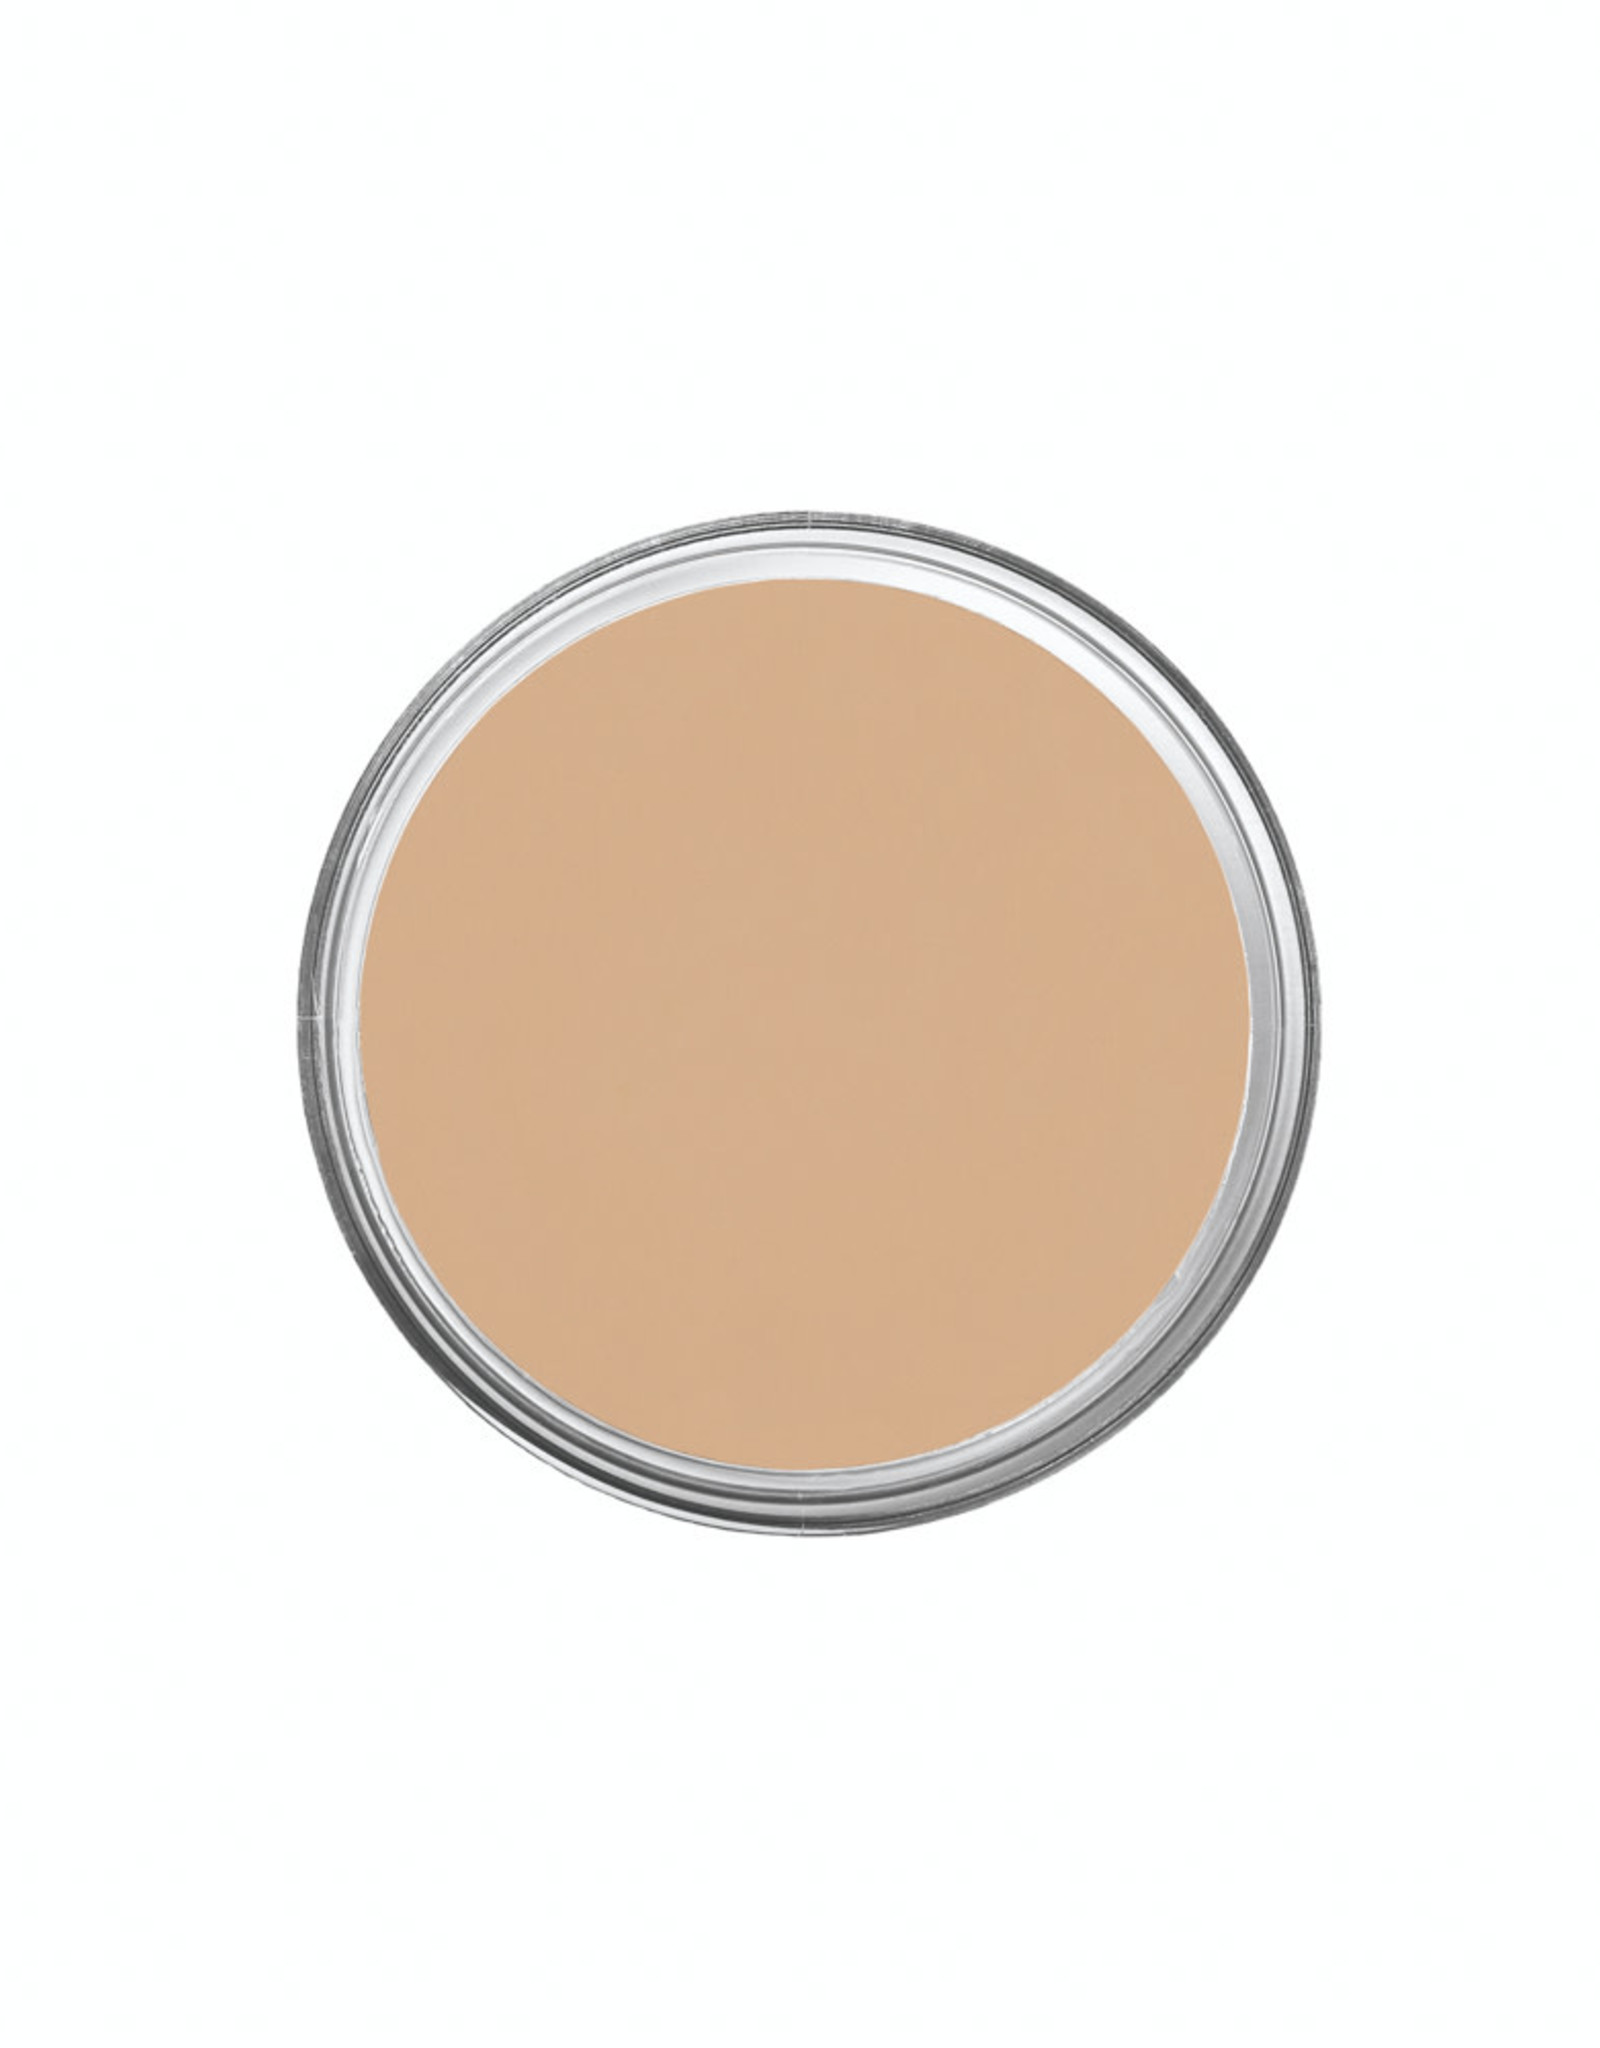 Ben Nye FOUNDATION-MATTE HD, CINE LT TAN, .5 OZ